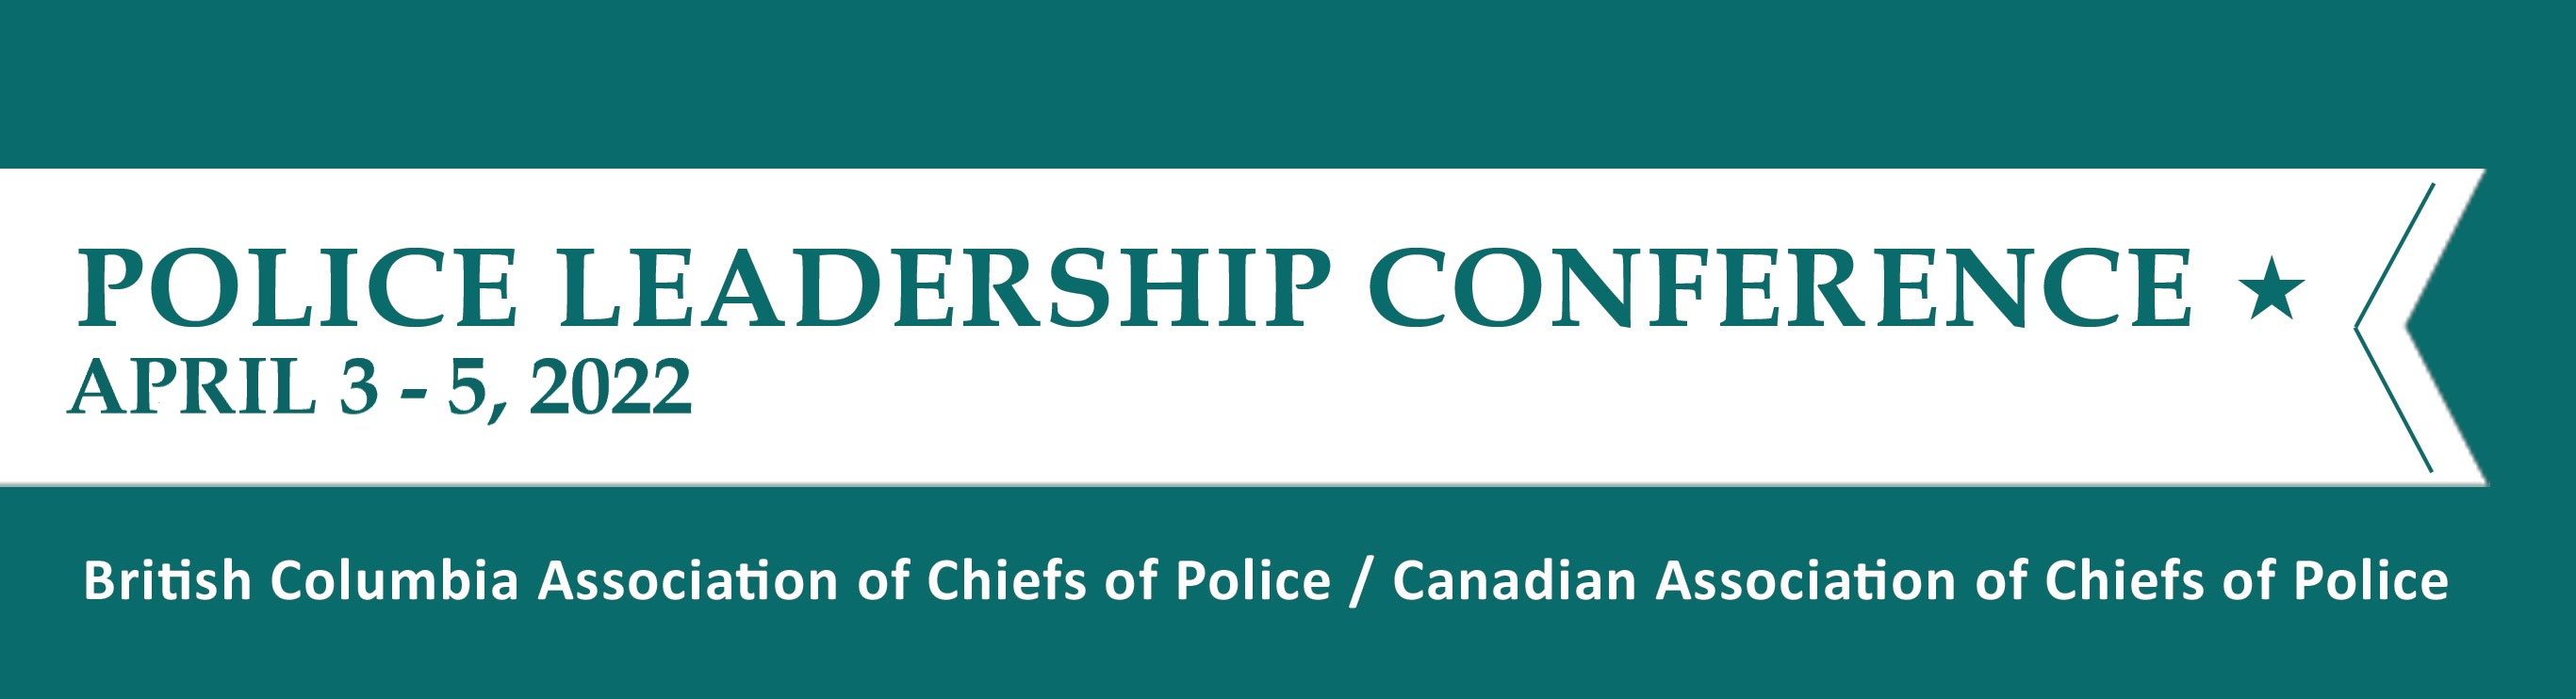 2022 Police Leadership Conference